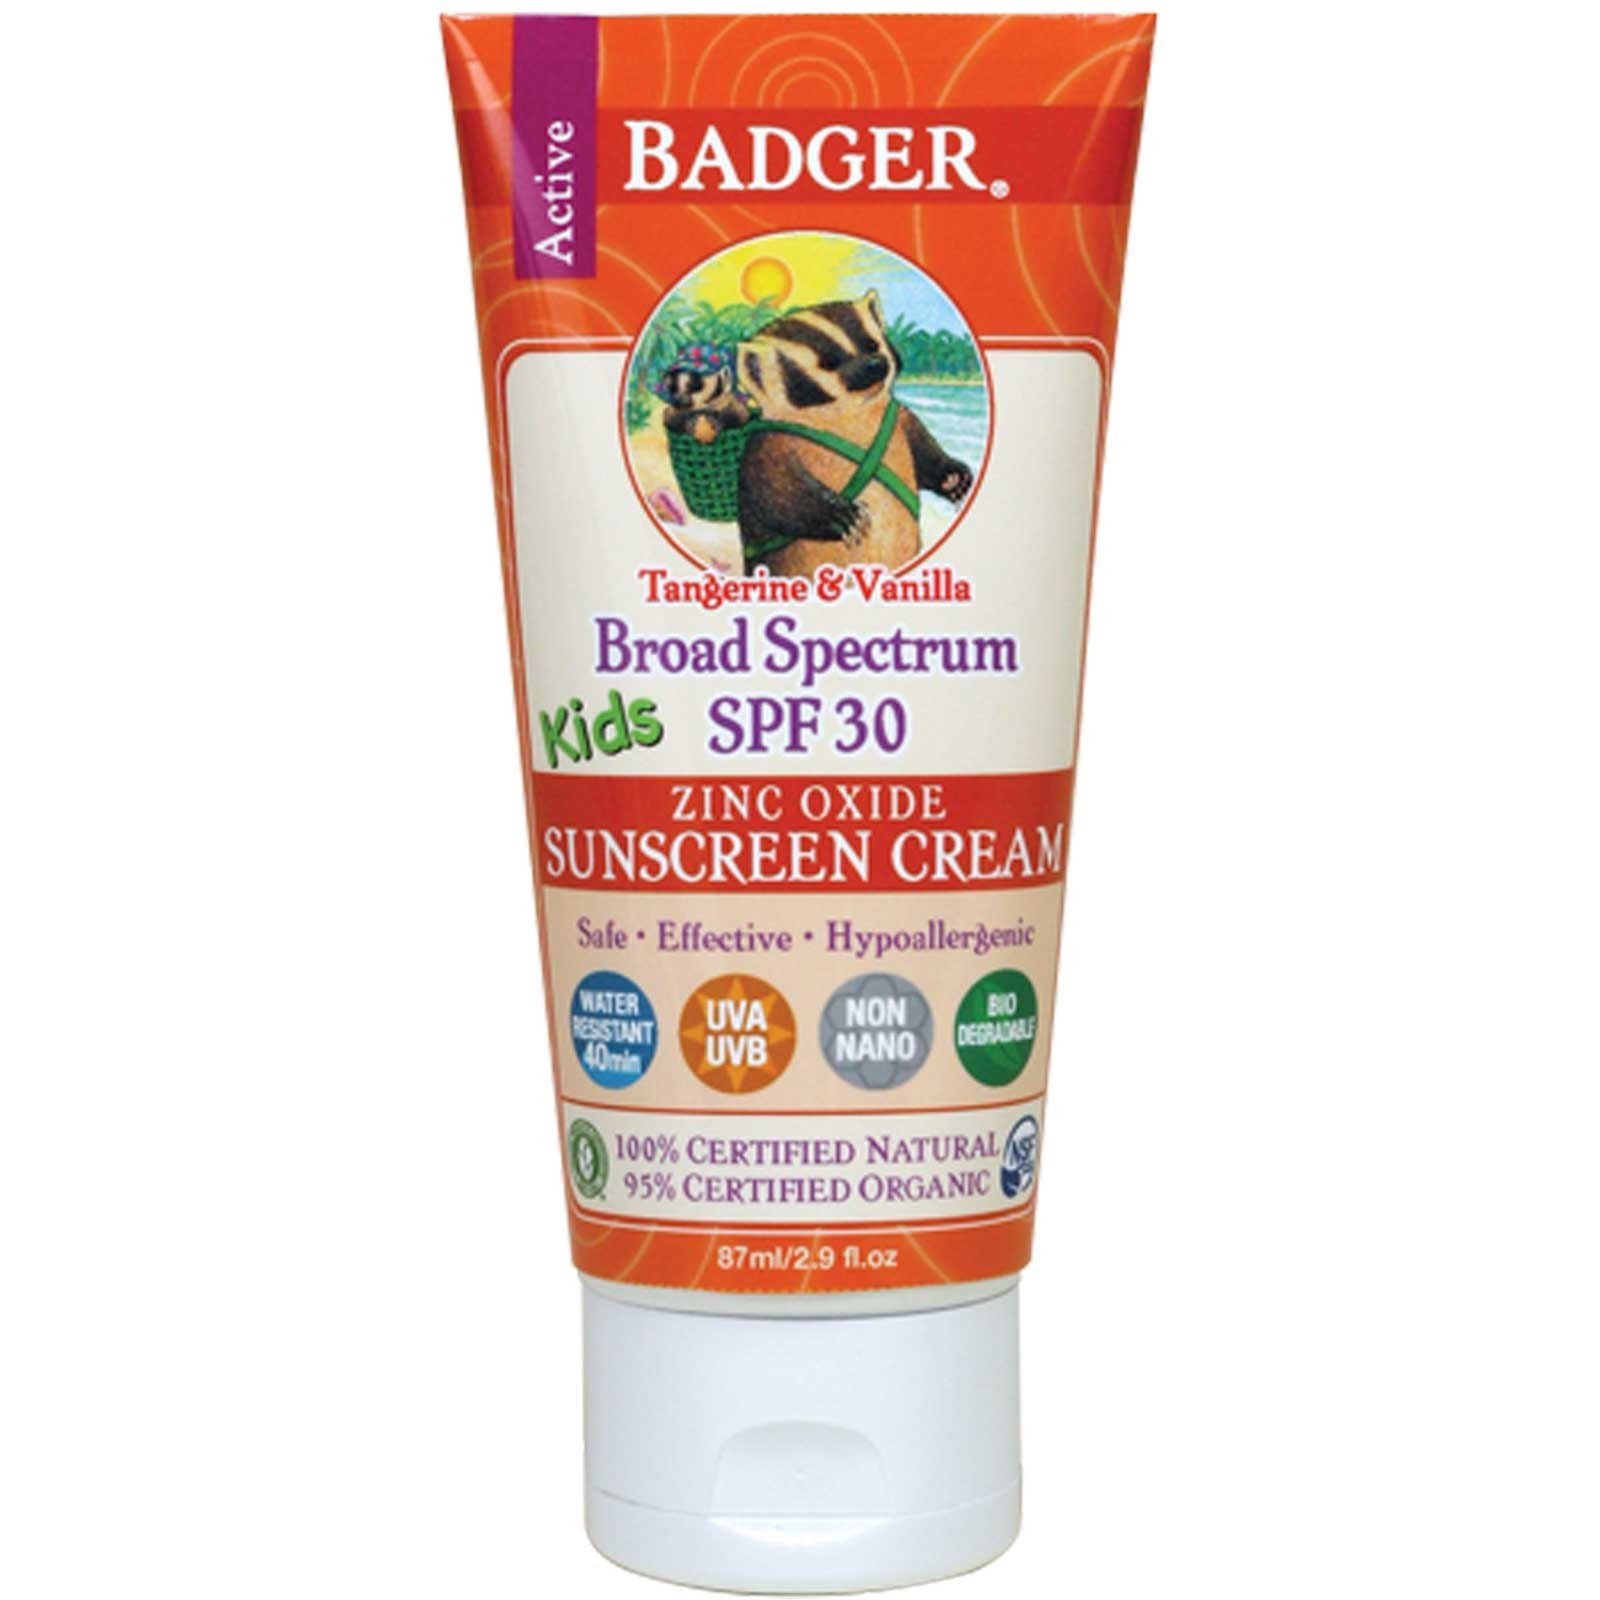 Badger Comapany Tangerine & Vanilla Sunscreen Cream SPF 30